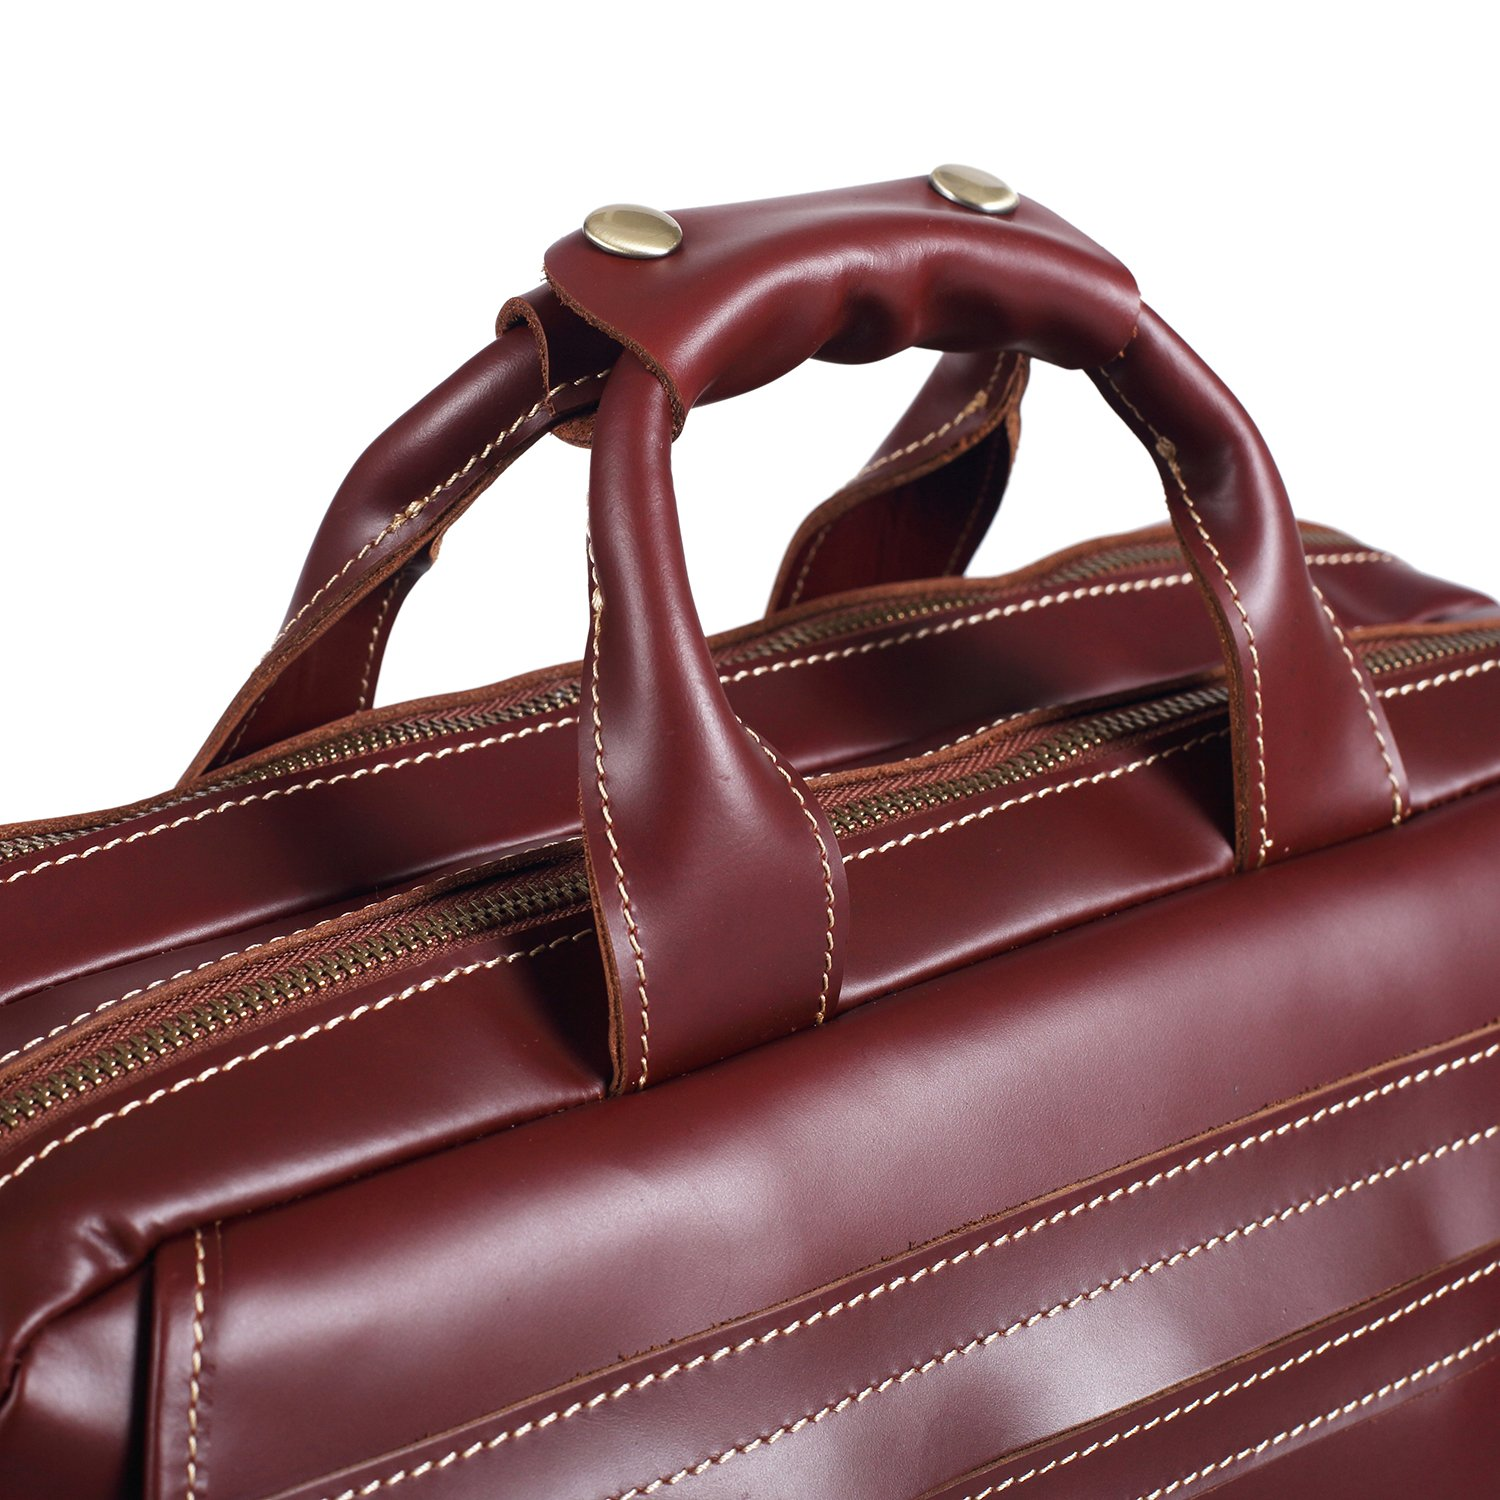 Polare Italian Leather Briefcase Should Bag Attache Fit 15.6inch Laptop by Polare (Image #8)